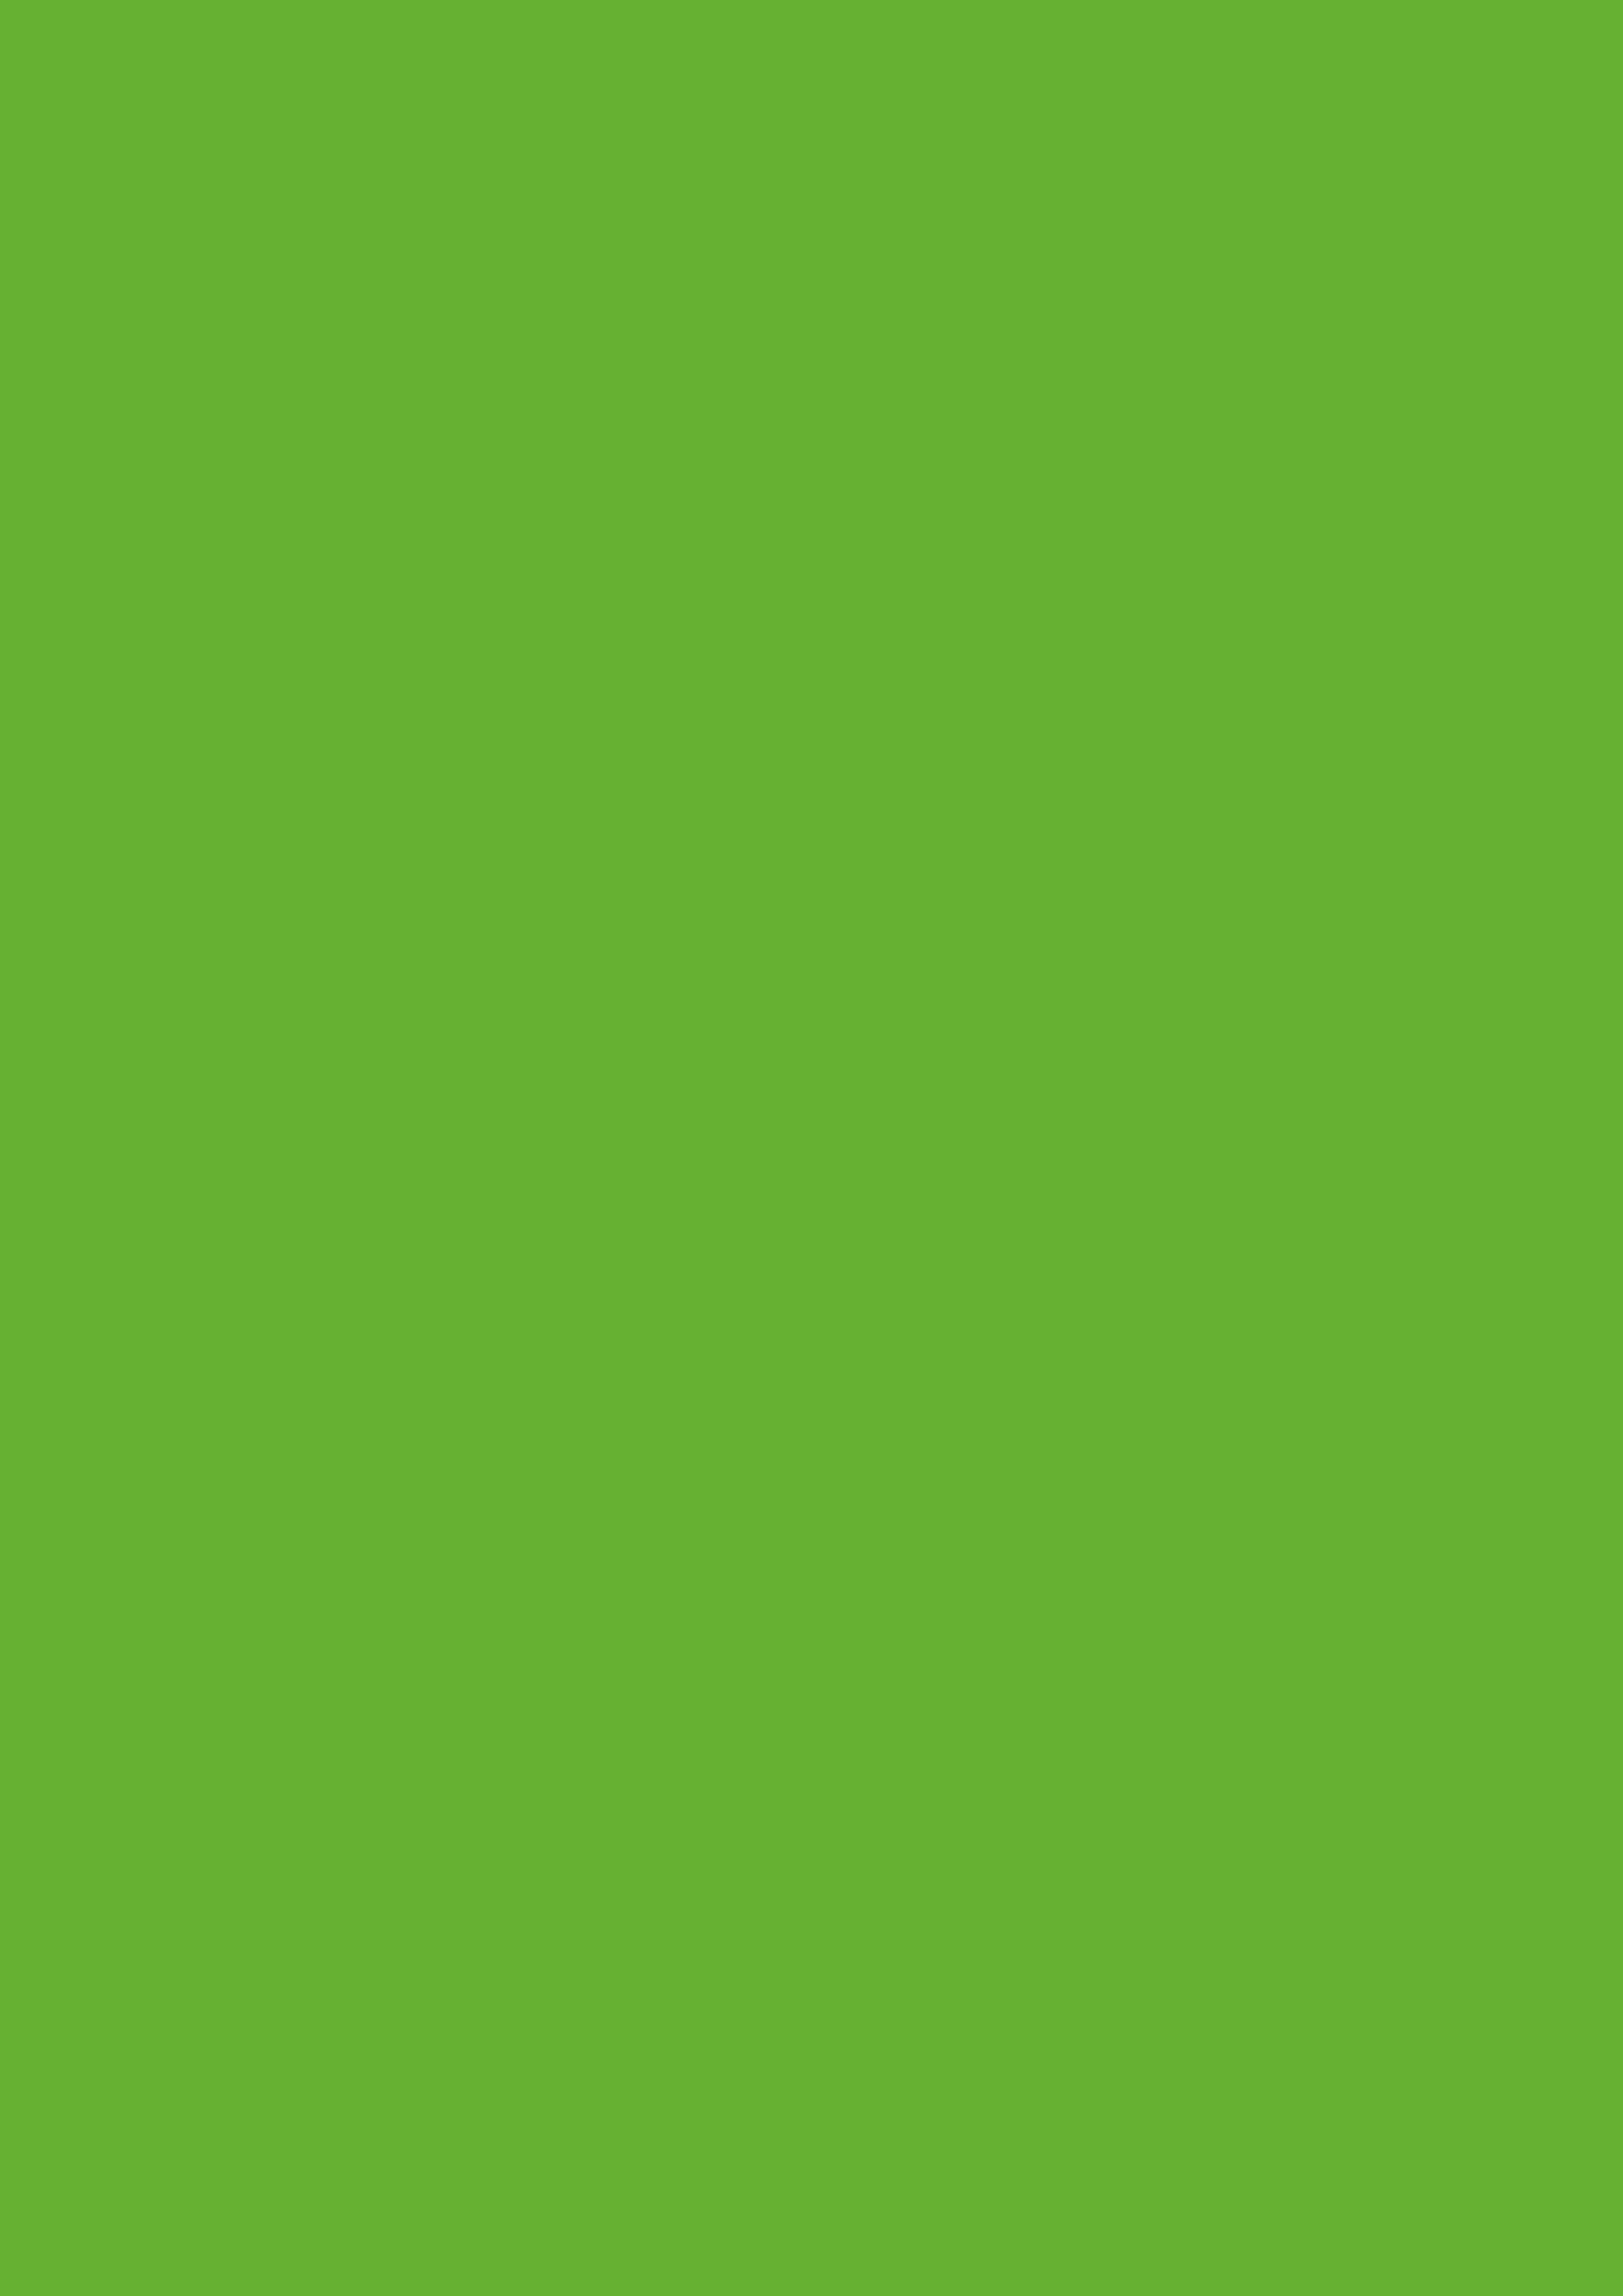 2480x3508 Green RYB Solid Color Background